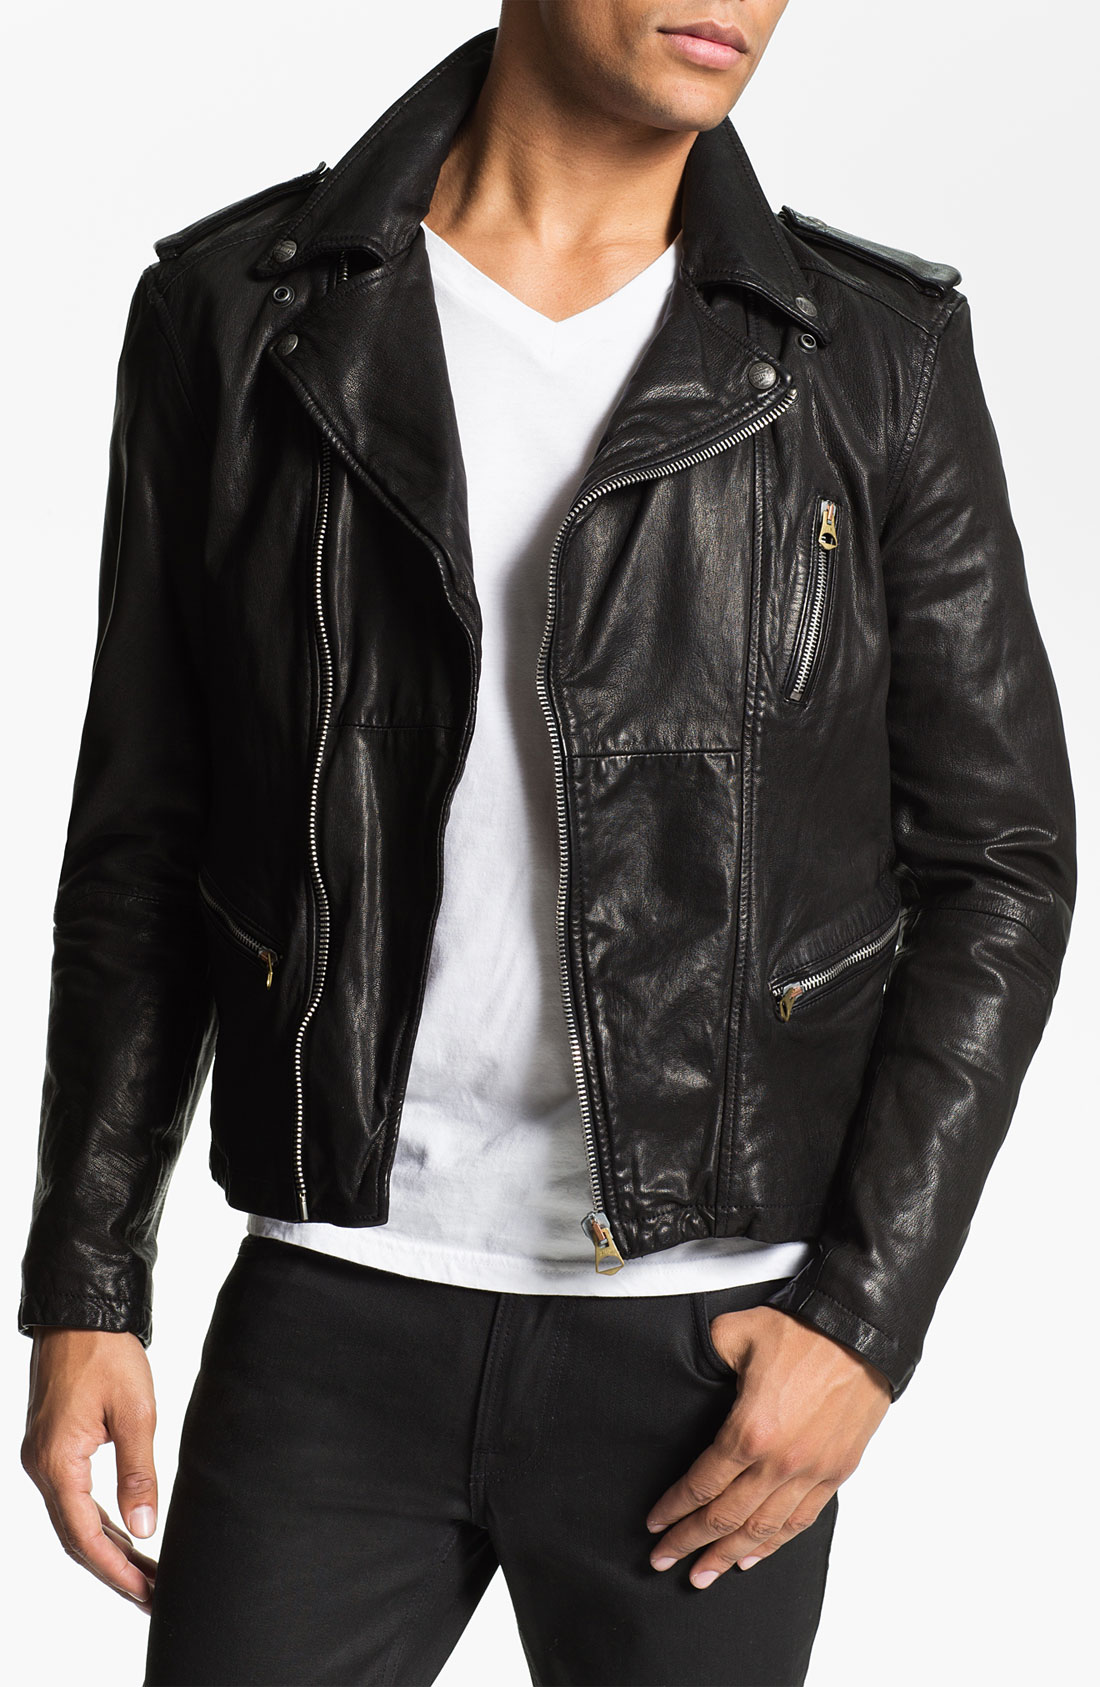 schönen Glanz seriöse Seite hell im Glanz Scotch And Soda Lederjacke. lyst scotch soda leather biker ...